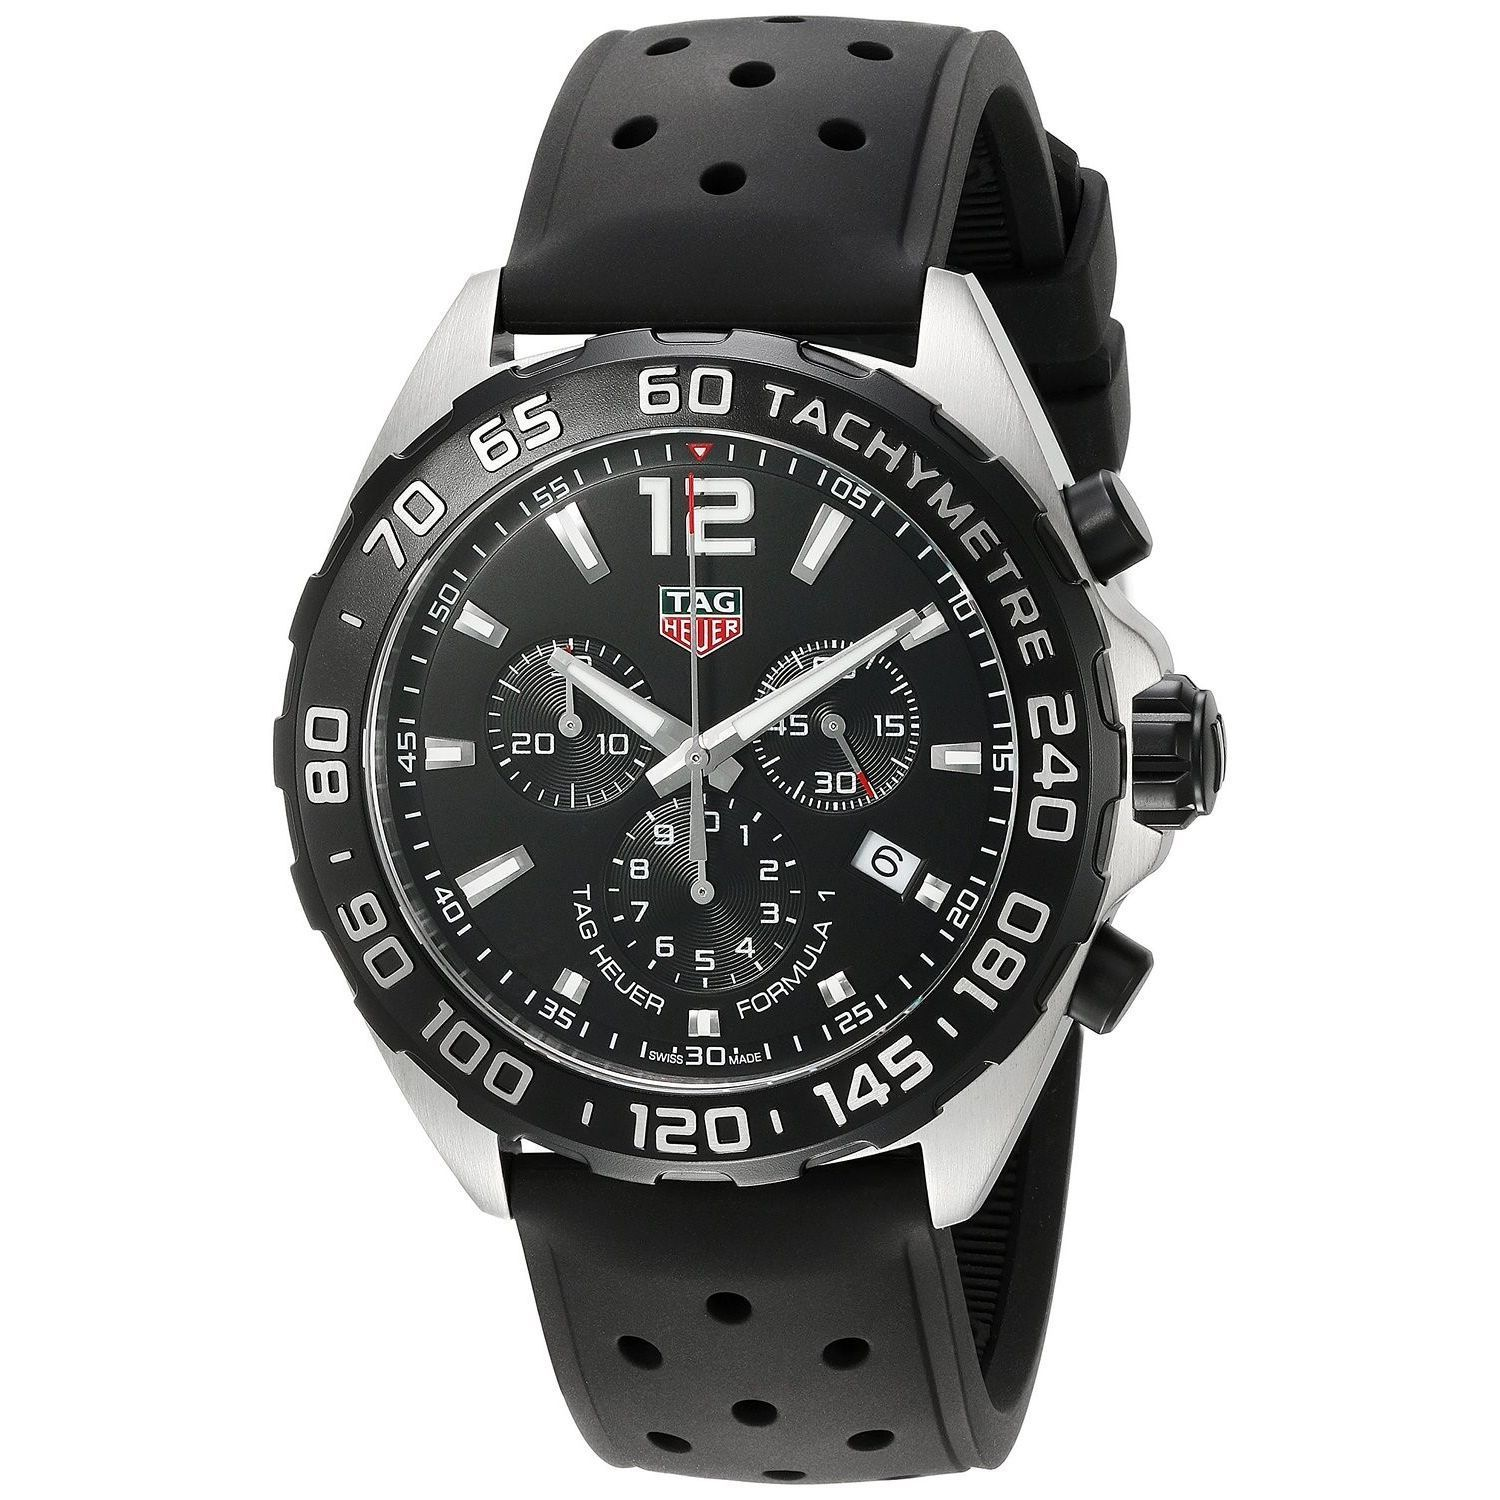 5f91cfa8adc Shop Tag Heuer Men's CAZ1010.FT8024 'Formula One' Chronograph Black Rubber  Watch - Free Shipping Today - Overstock - 12485205